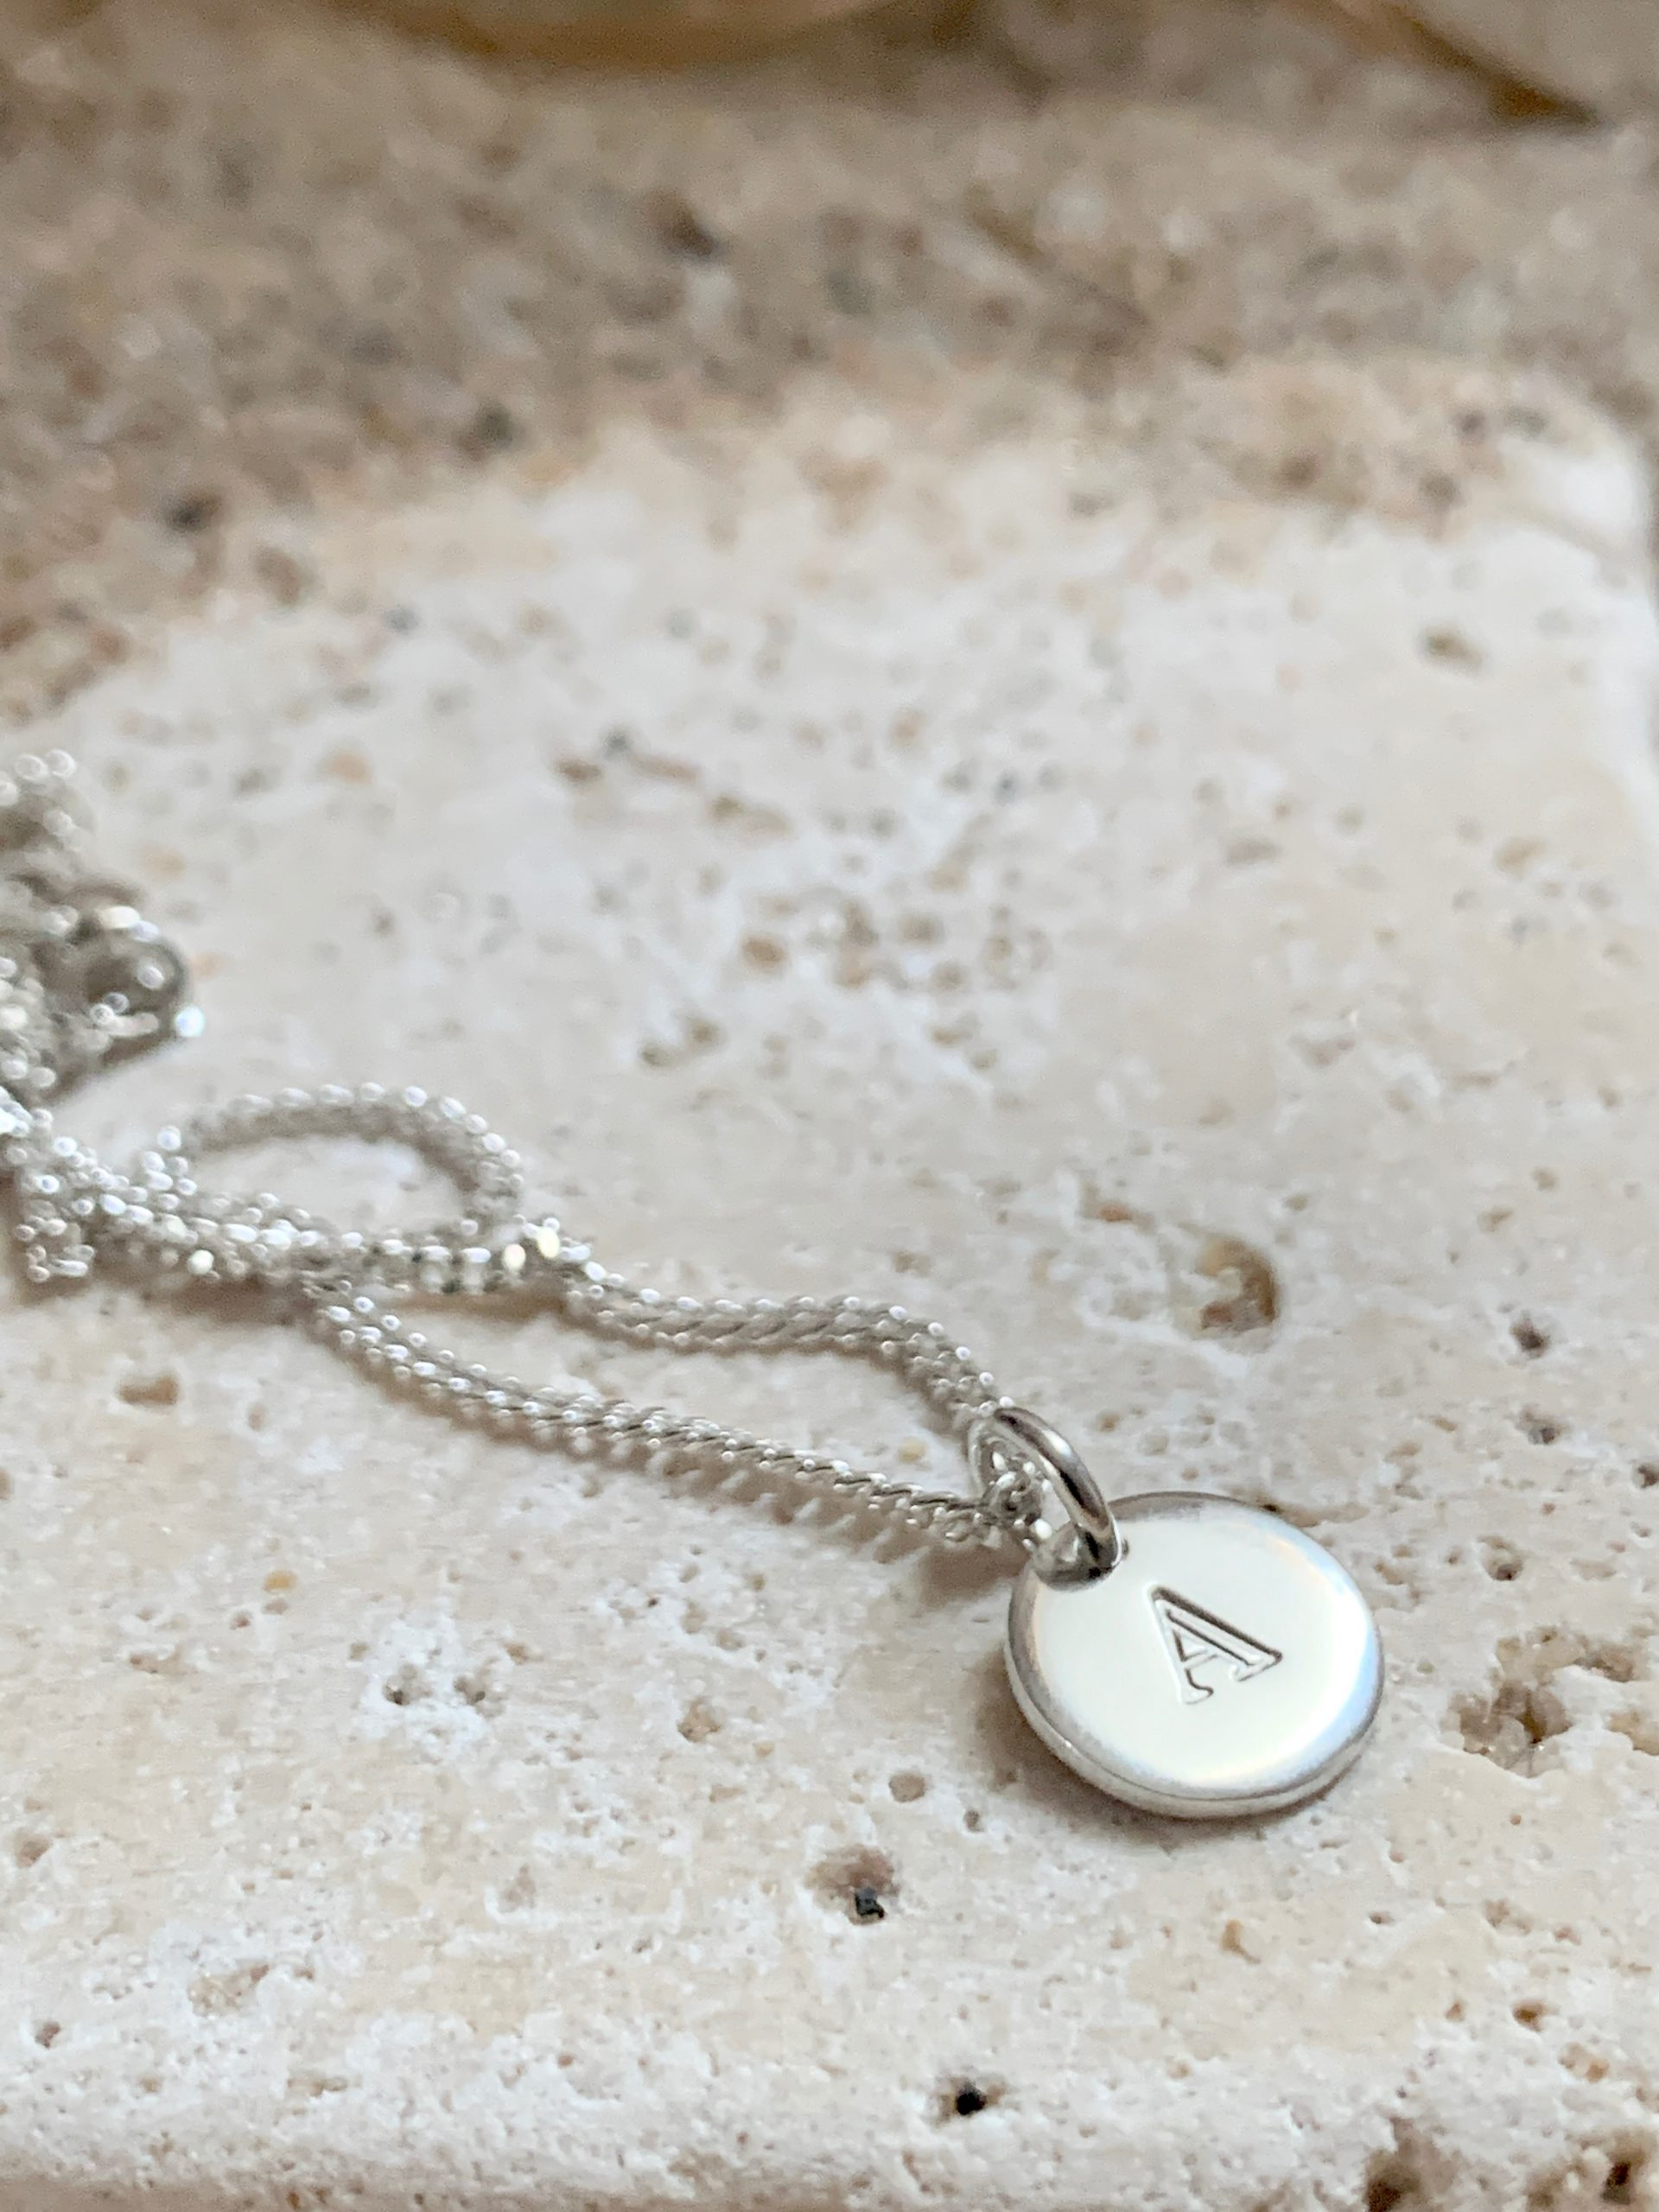 Loved initial necklace